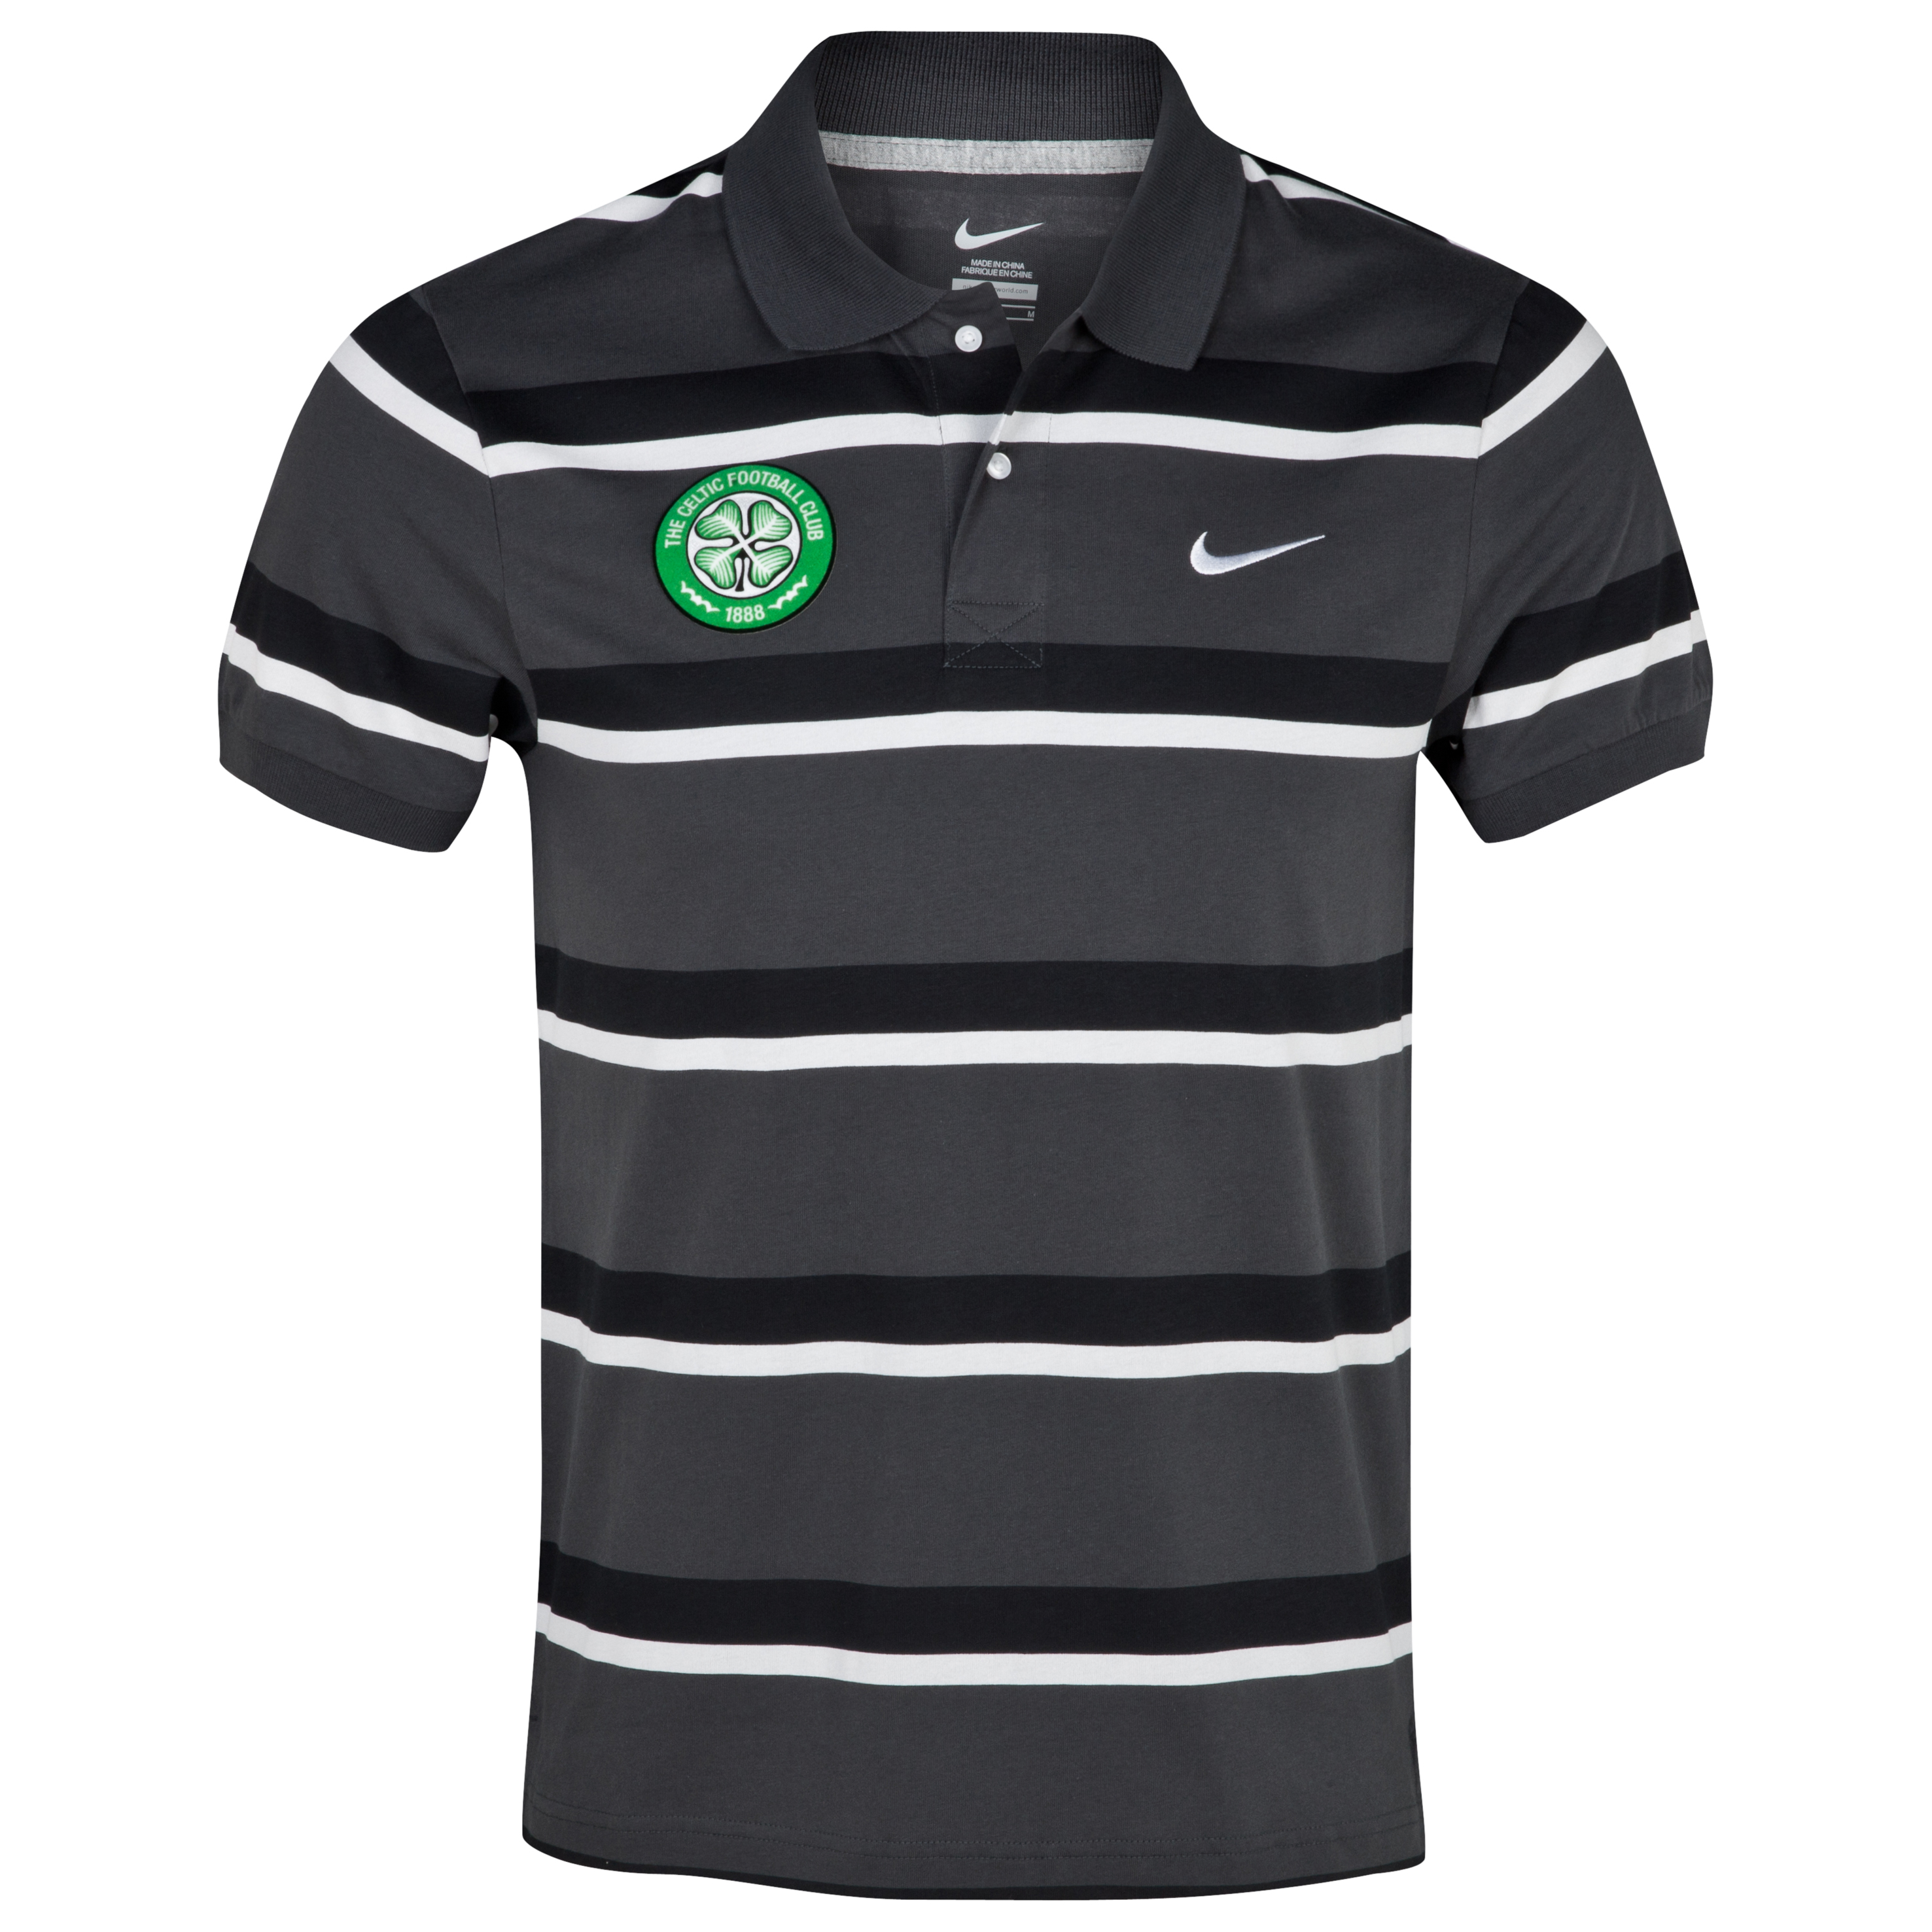 Celtic Classic Striped Jersey Polo - Anthracite/Black/White